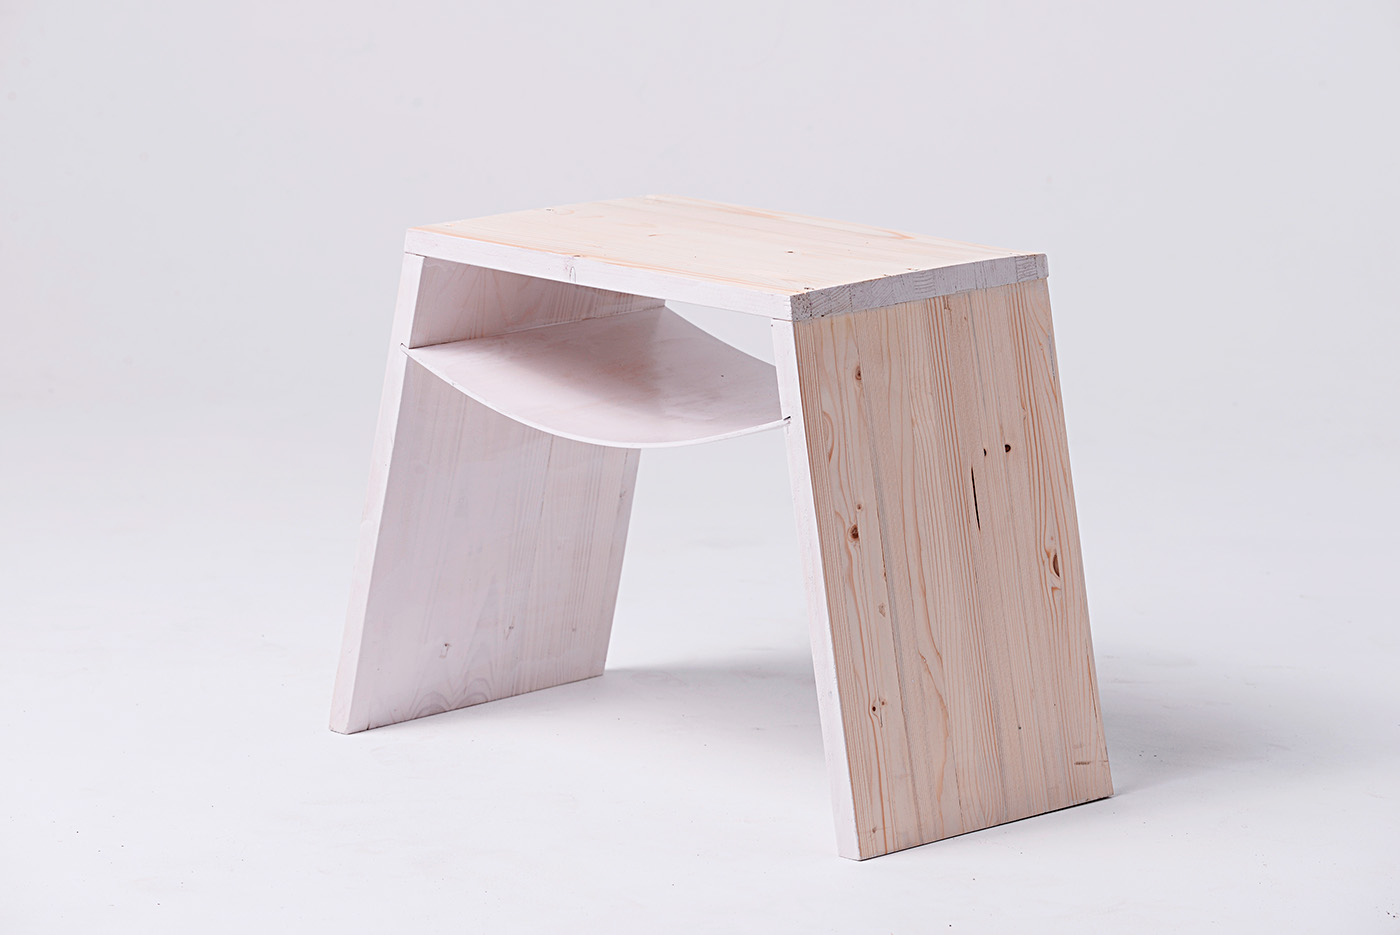 La collection de mobilier de Daniel Szalkai pour Maacraft